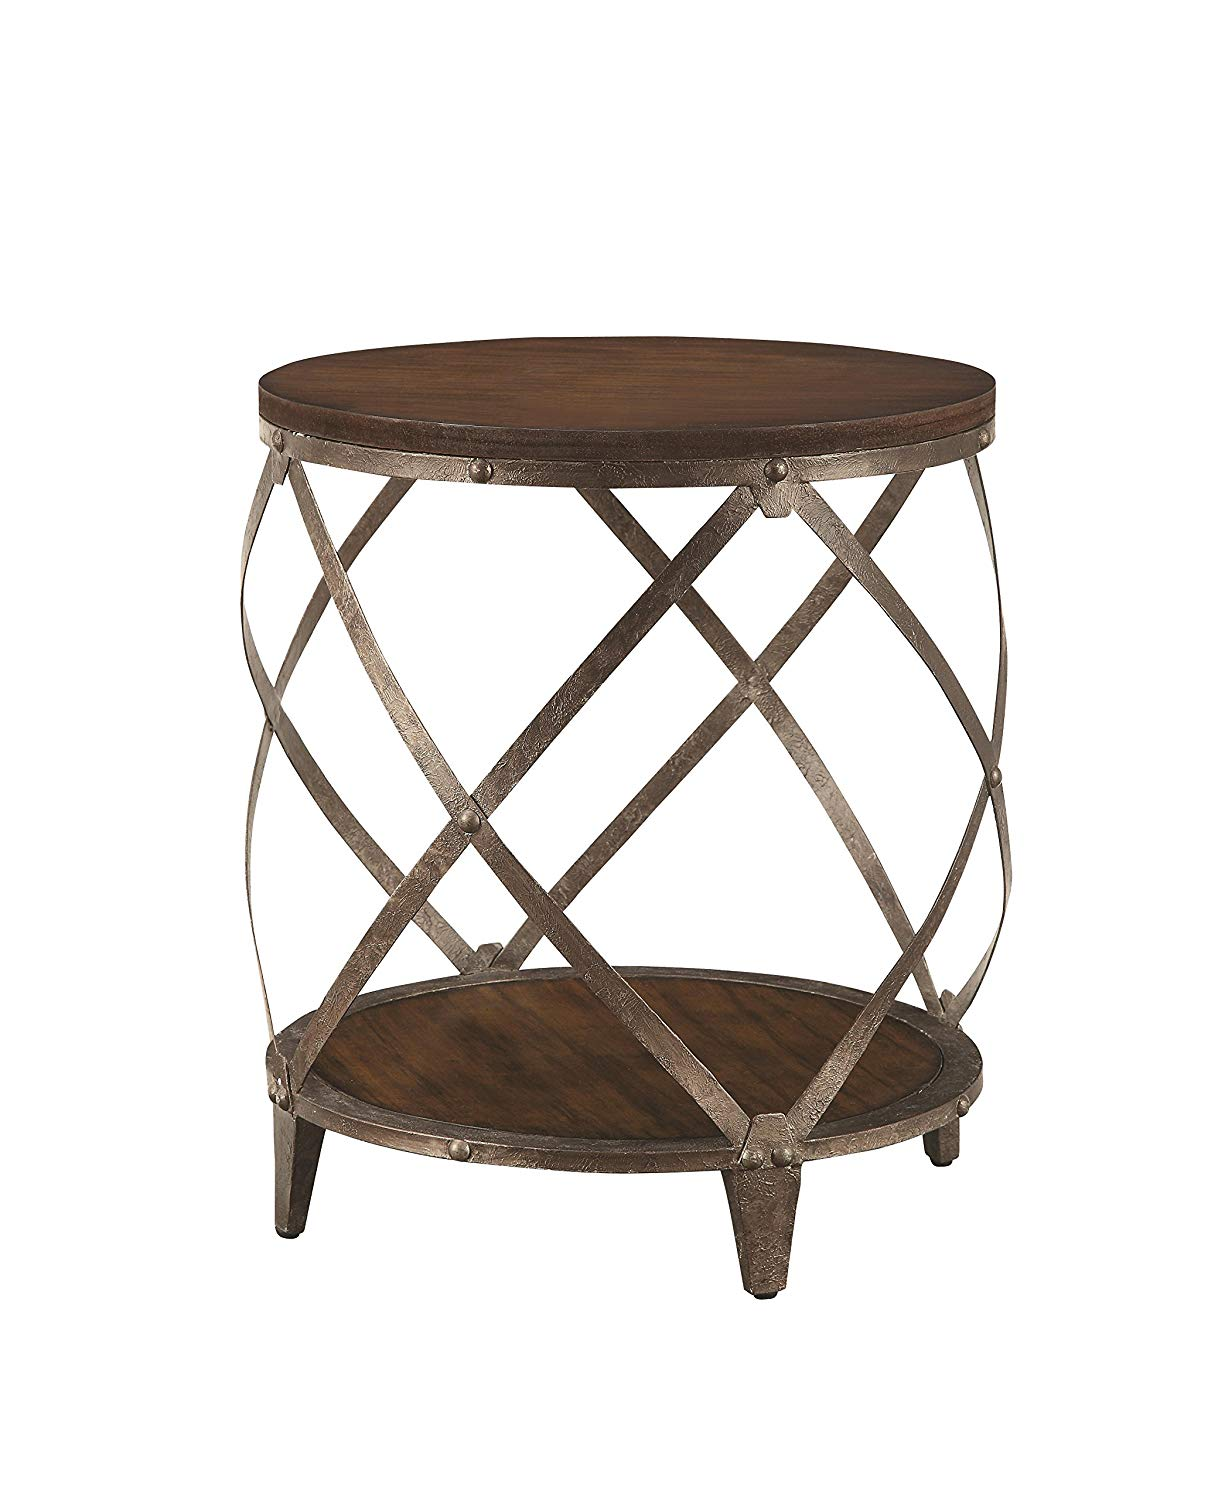 metal accent table with drum shape brown kitchen dining outdoor small tall end cordless lamps round coffee mirrored chest drawers wicker patio sheesham wood drop leaf side bar